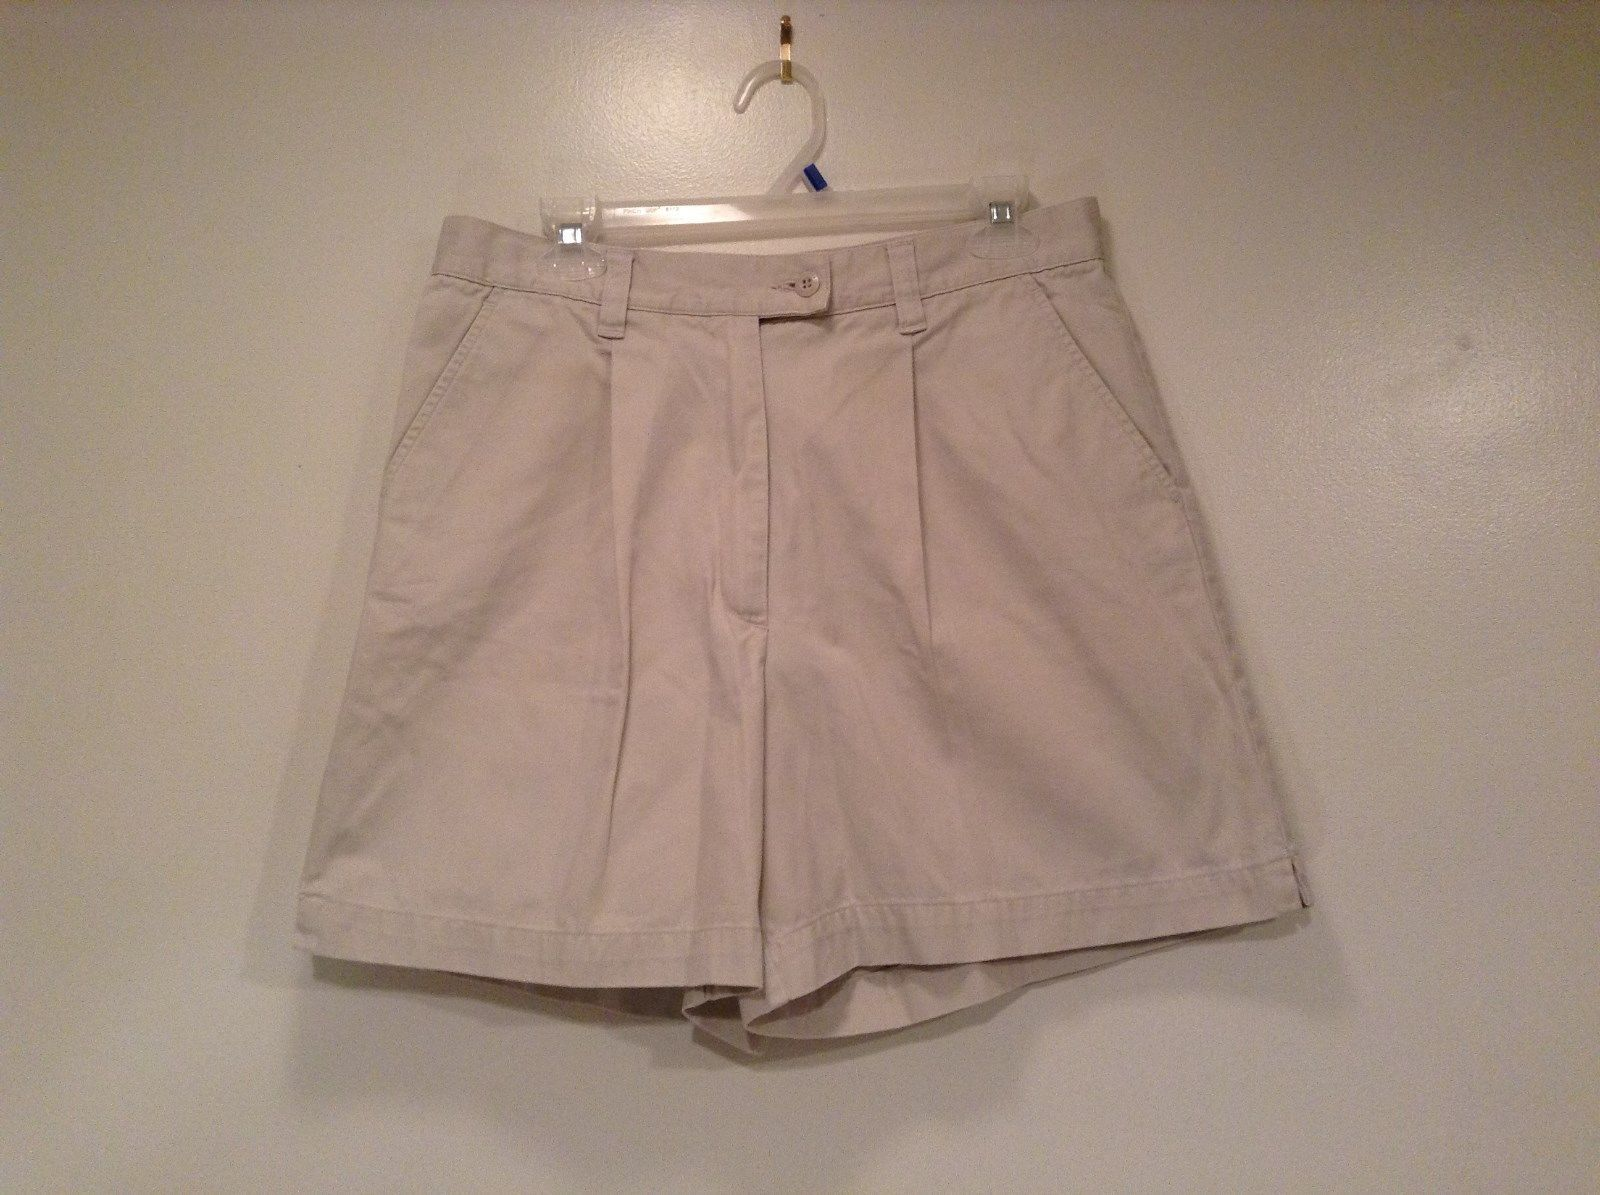 New York and Company NY Khakis 100% Cotton Light Tan Casual Shorts Size 12